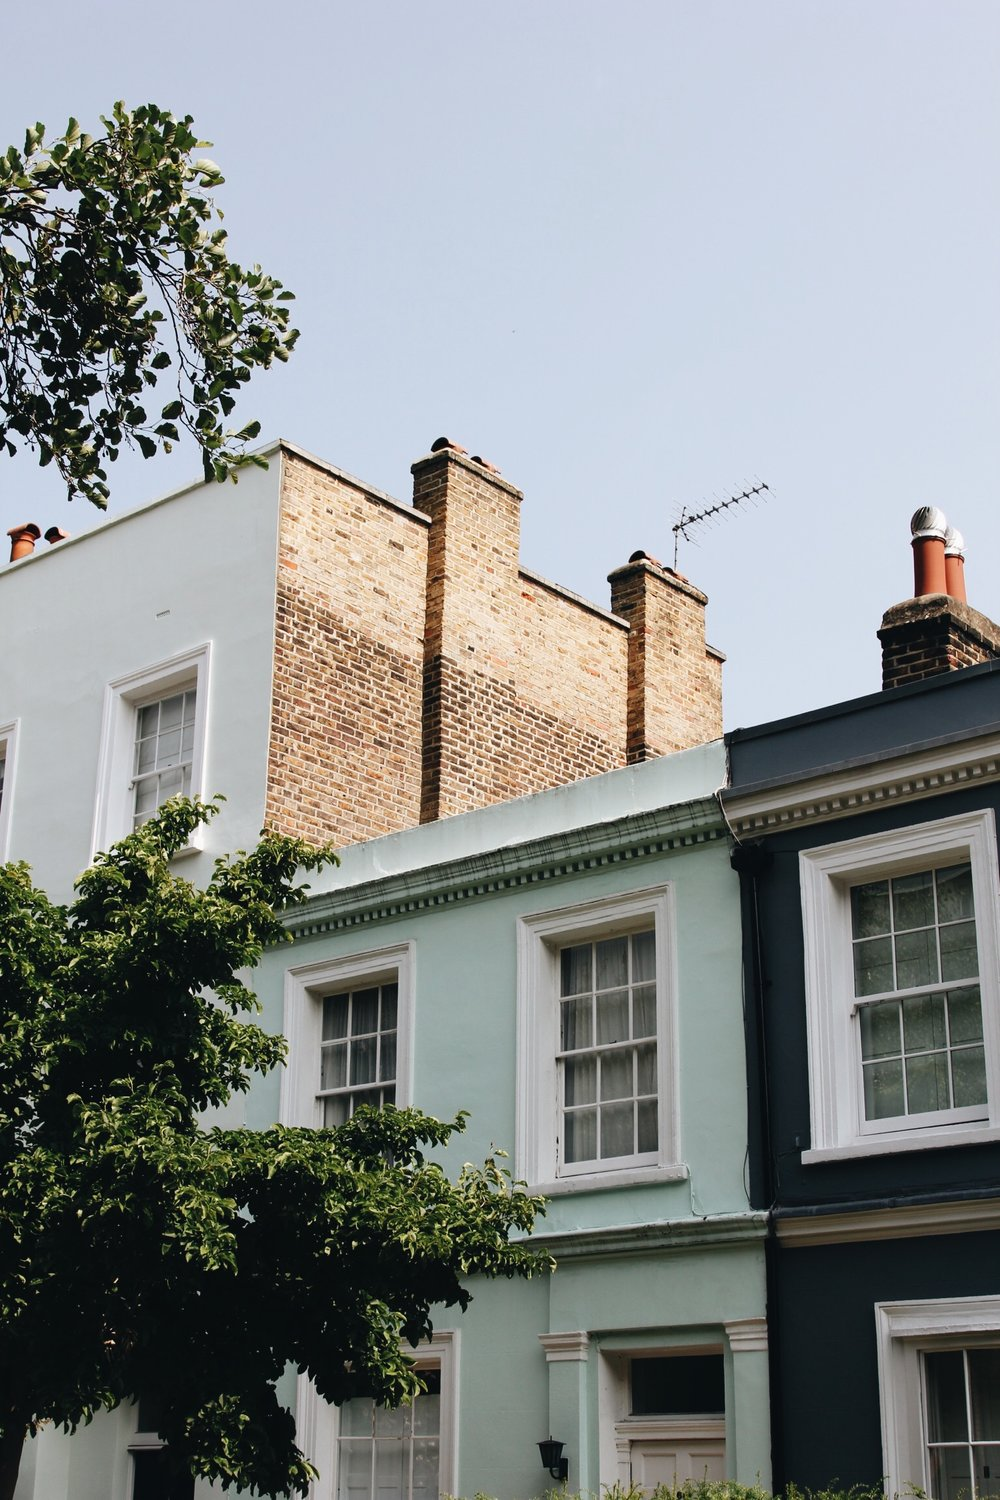 nottinghill-blog-voyage-londres-onmyway.jpg